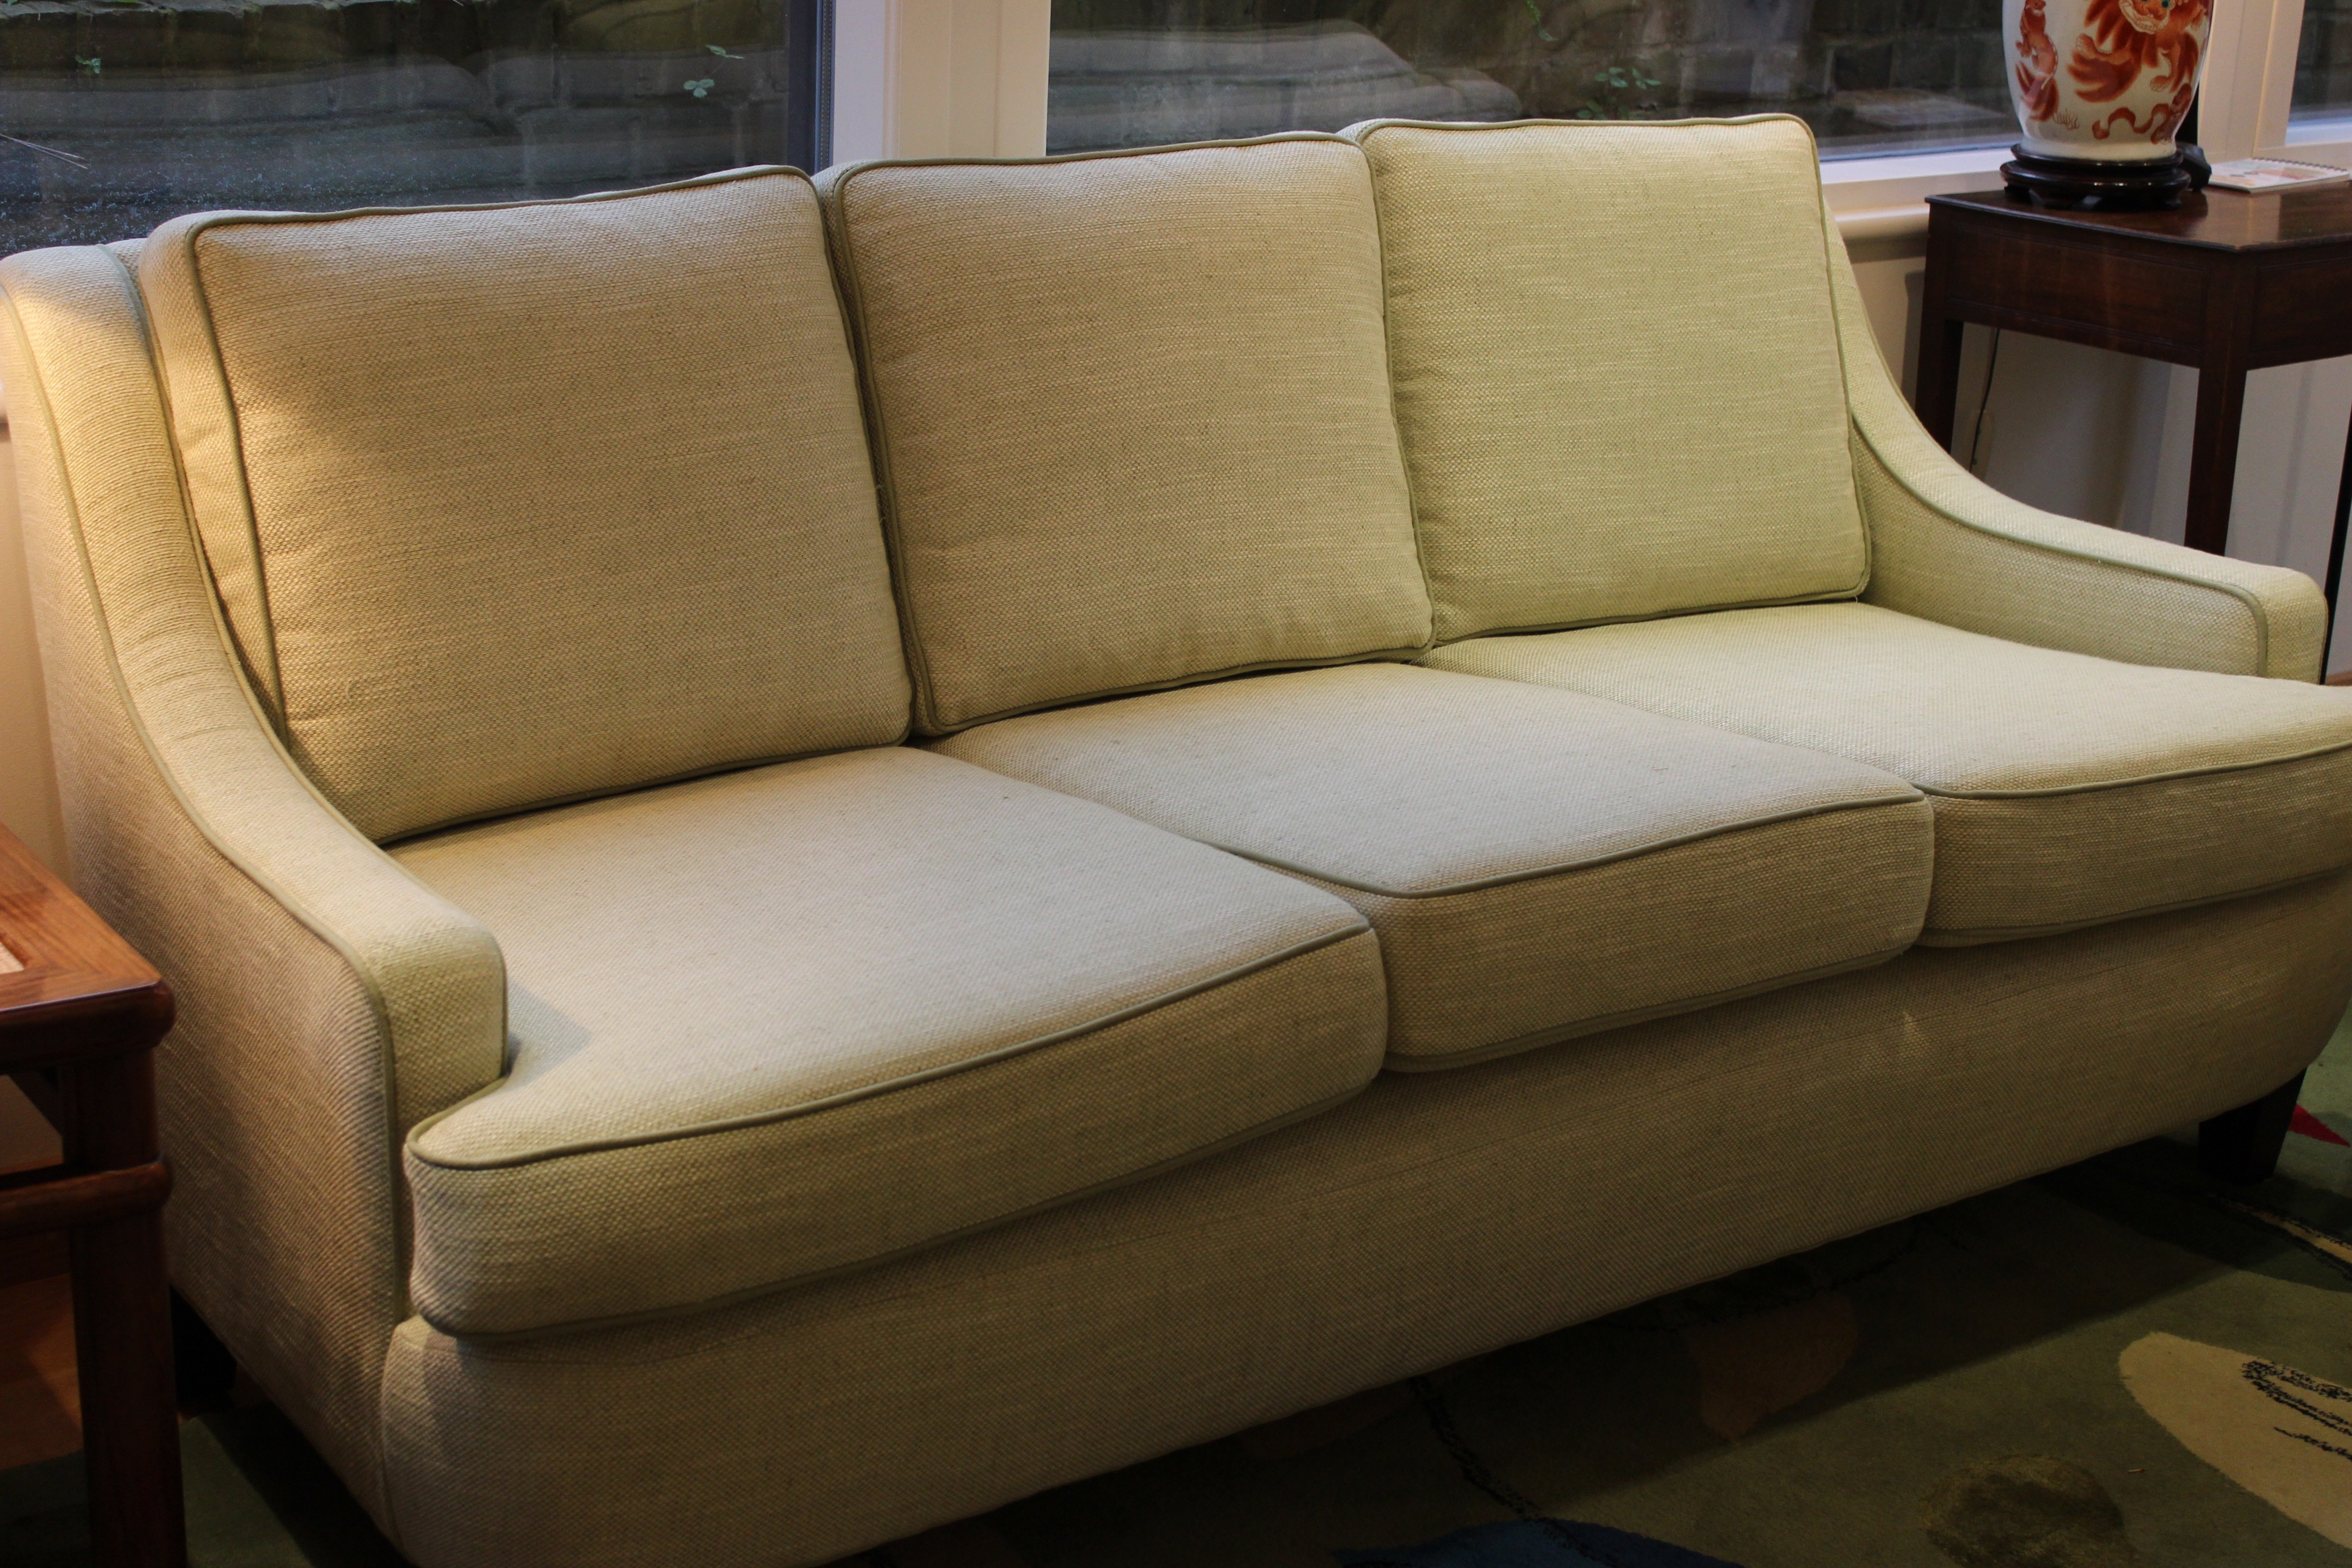 Sofa Set Repair Services In Porur Sofa Upholstery Services Across Reading